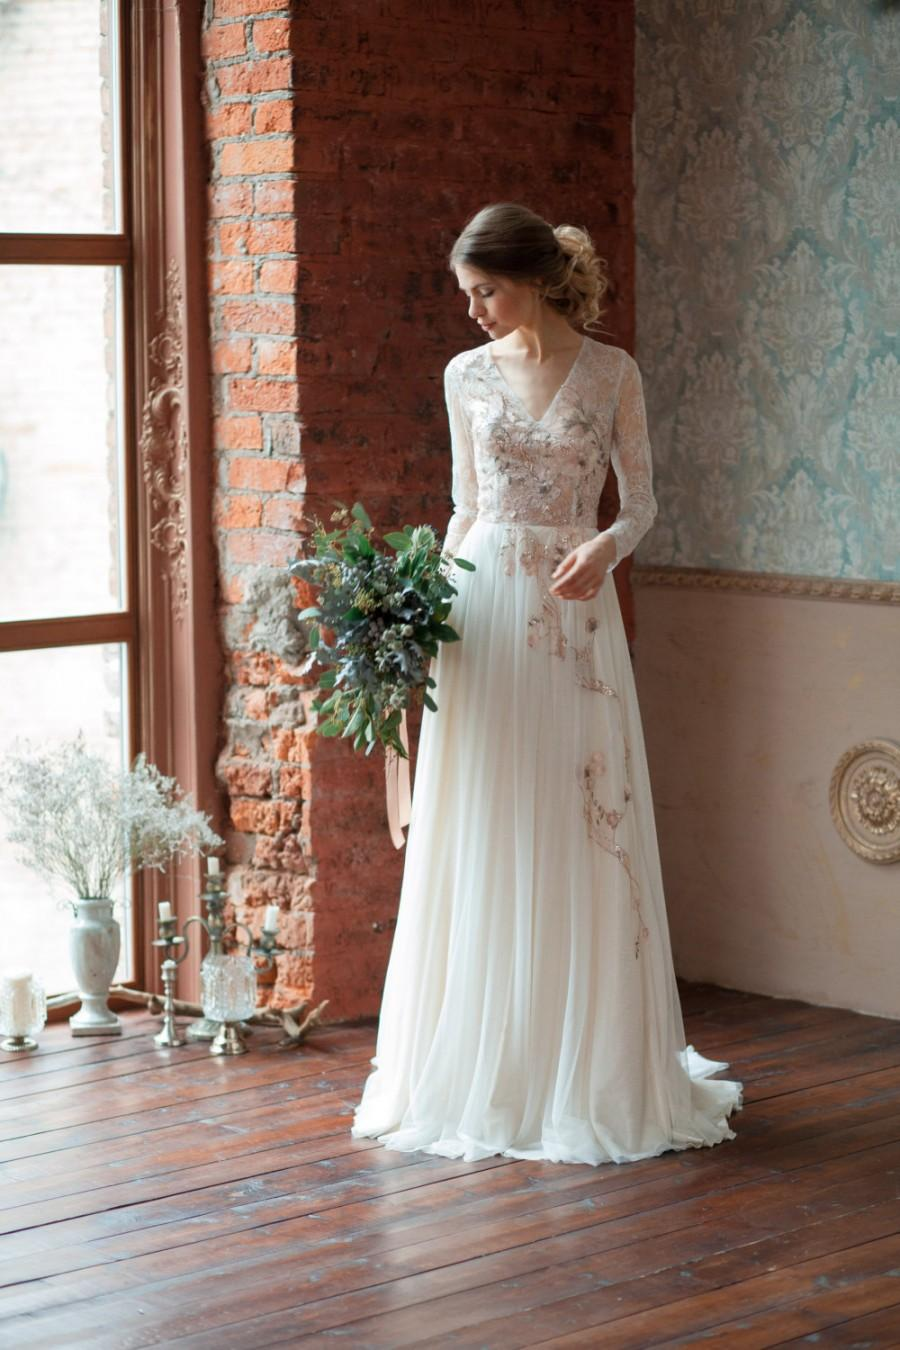 Mariage - Lace wedding dress GLORIA / Long sleeves wedding dress, comfortable wedding dress, boneless wedding dress, light wedding dress, covered back